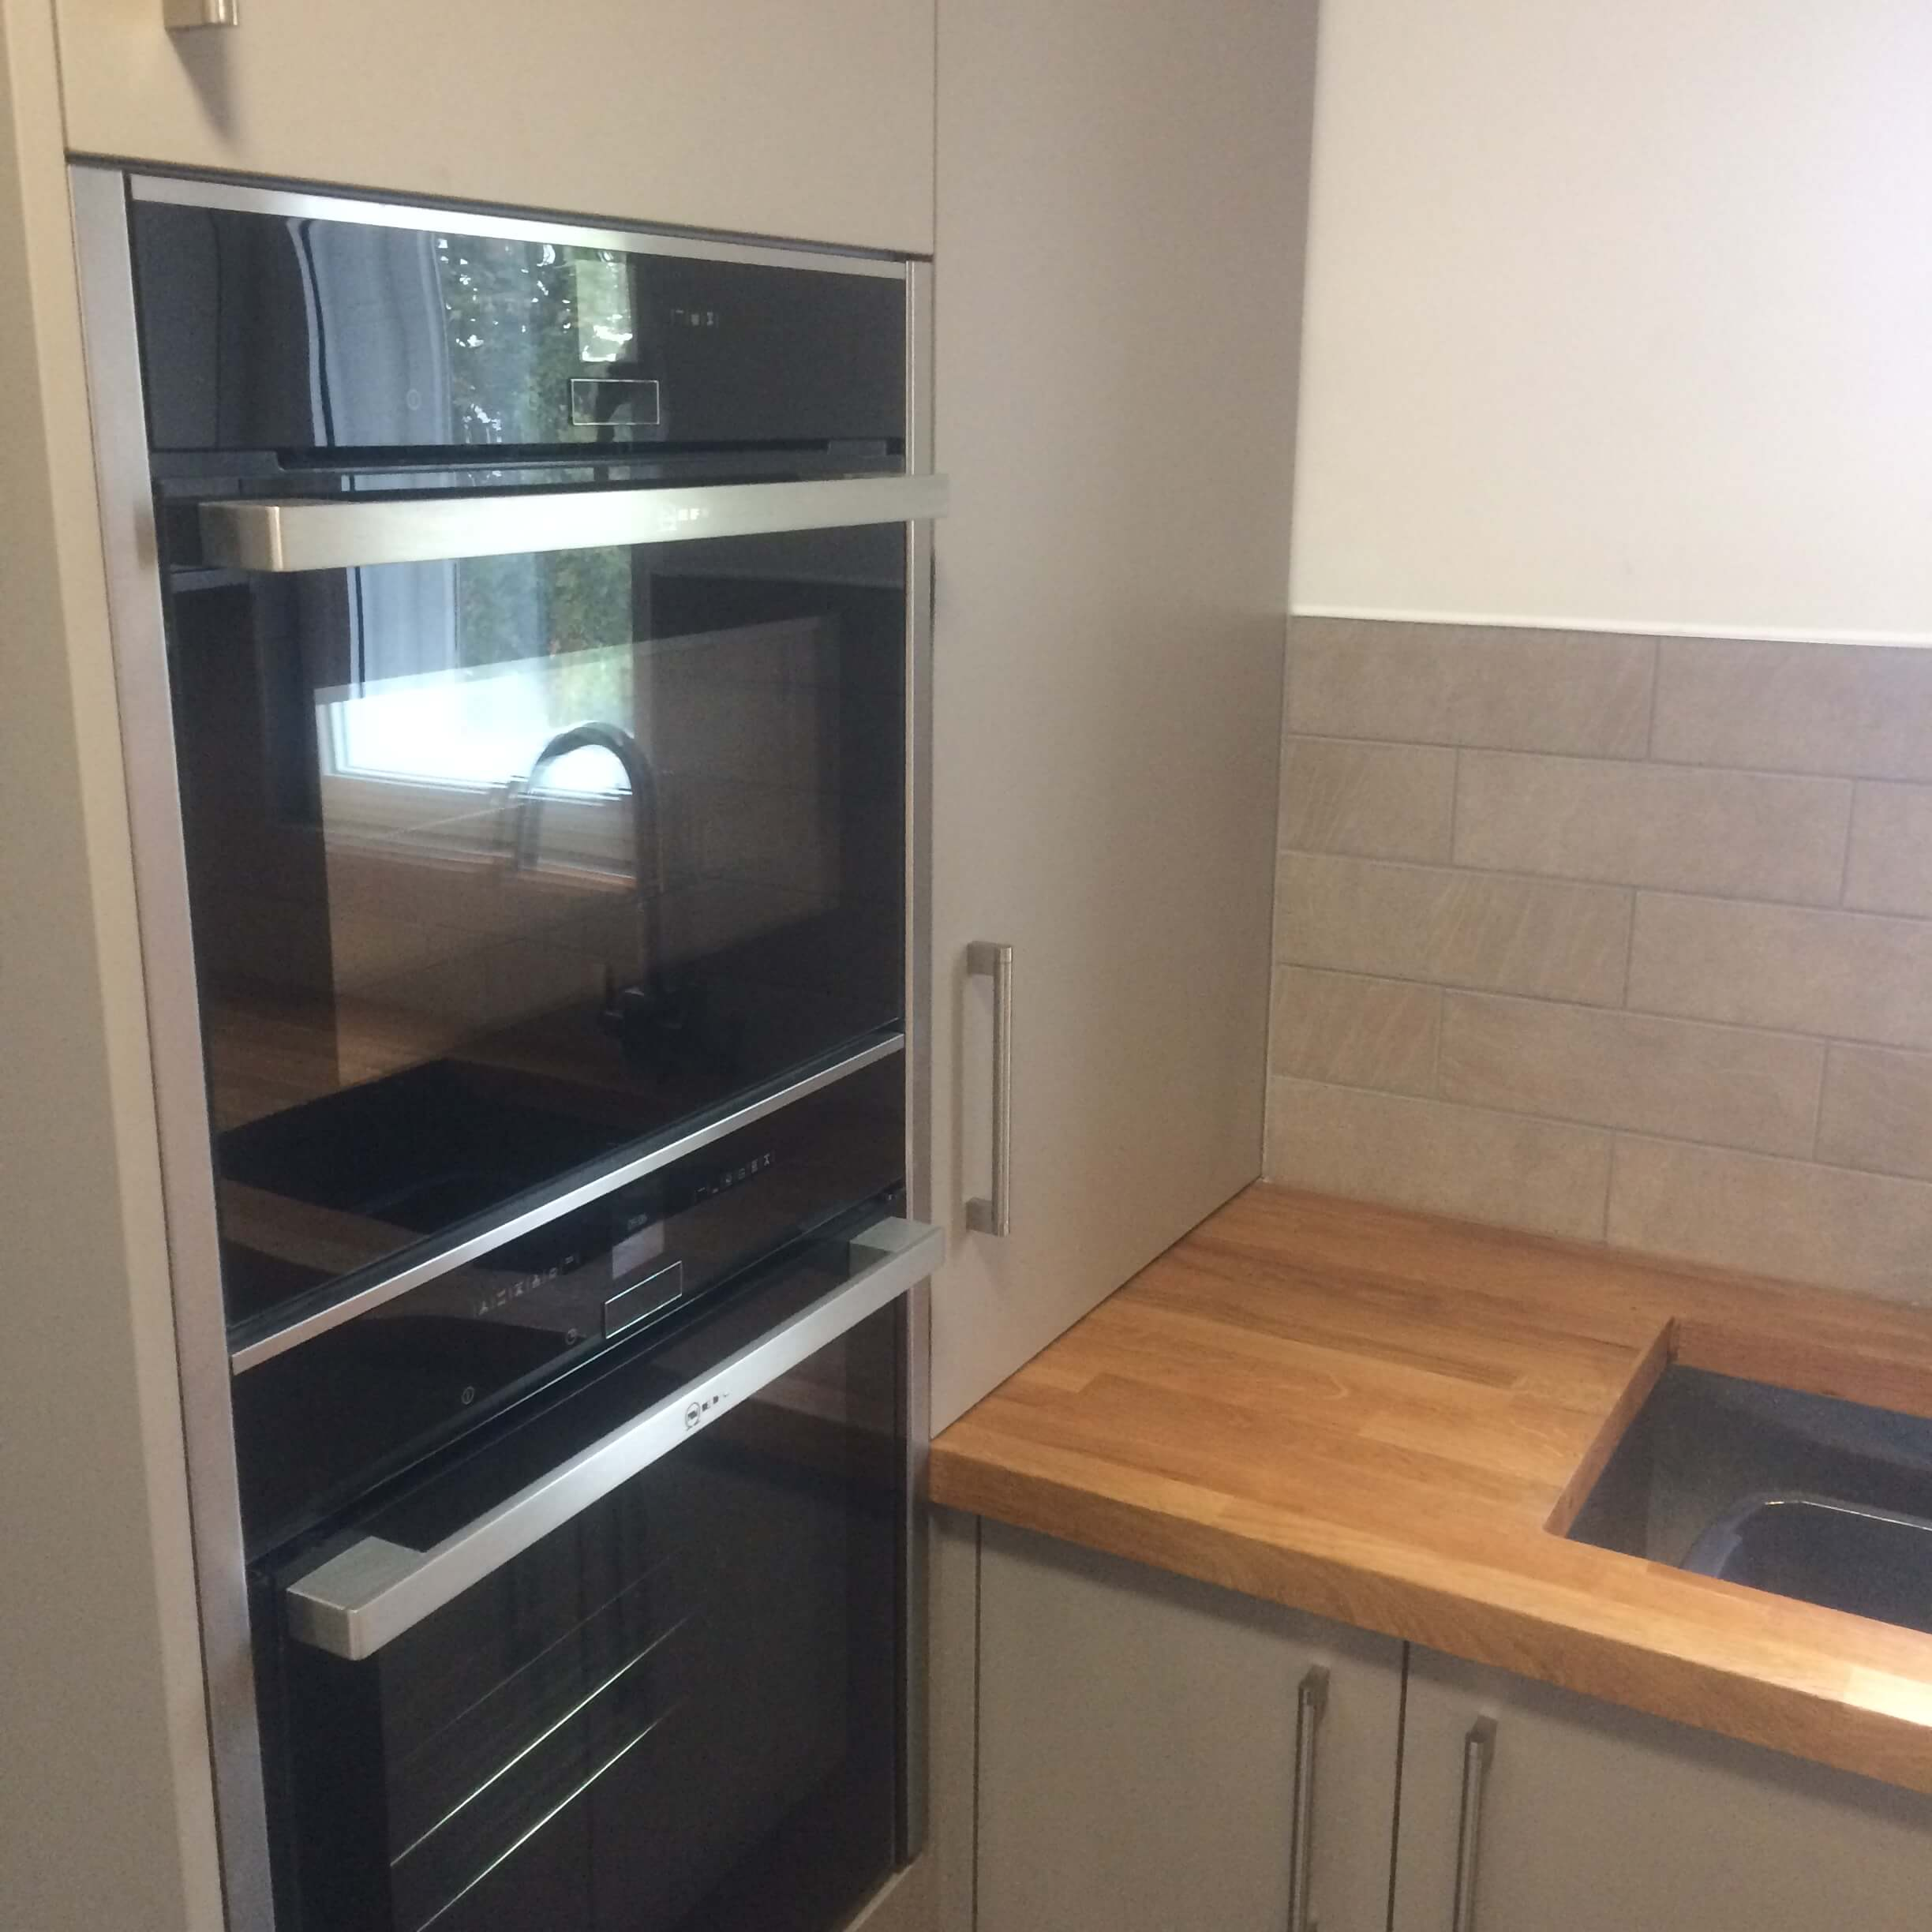 Handled kitchen installation SE6